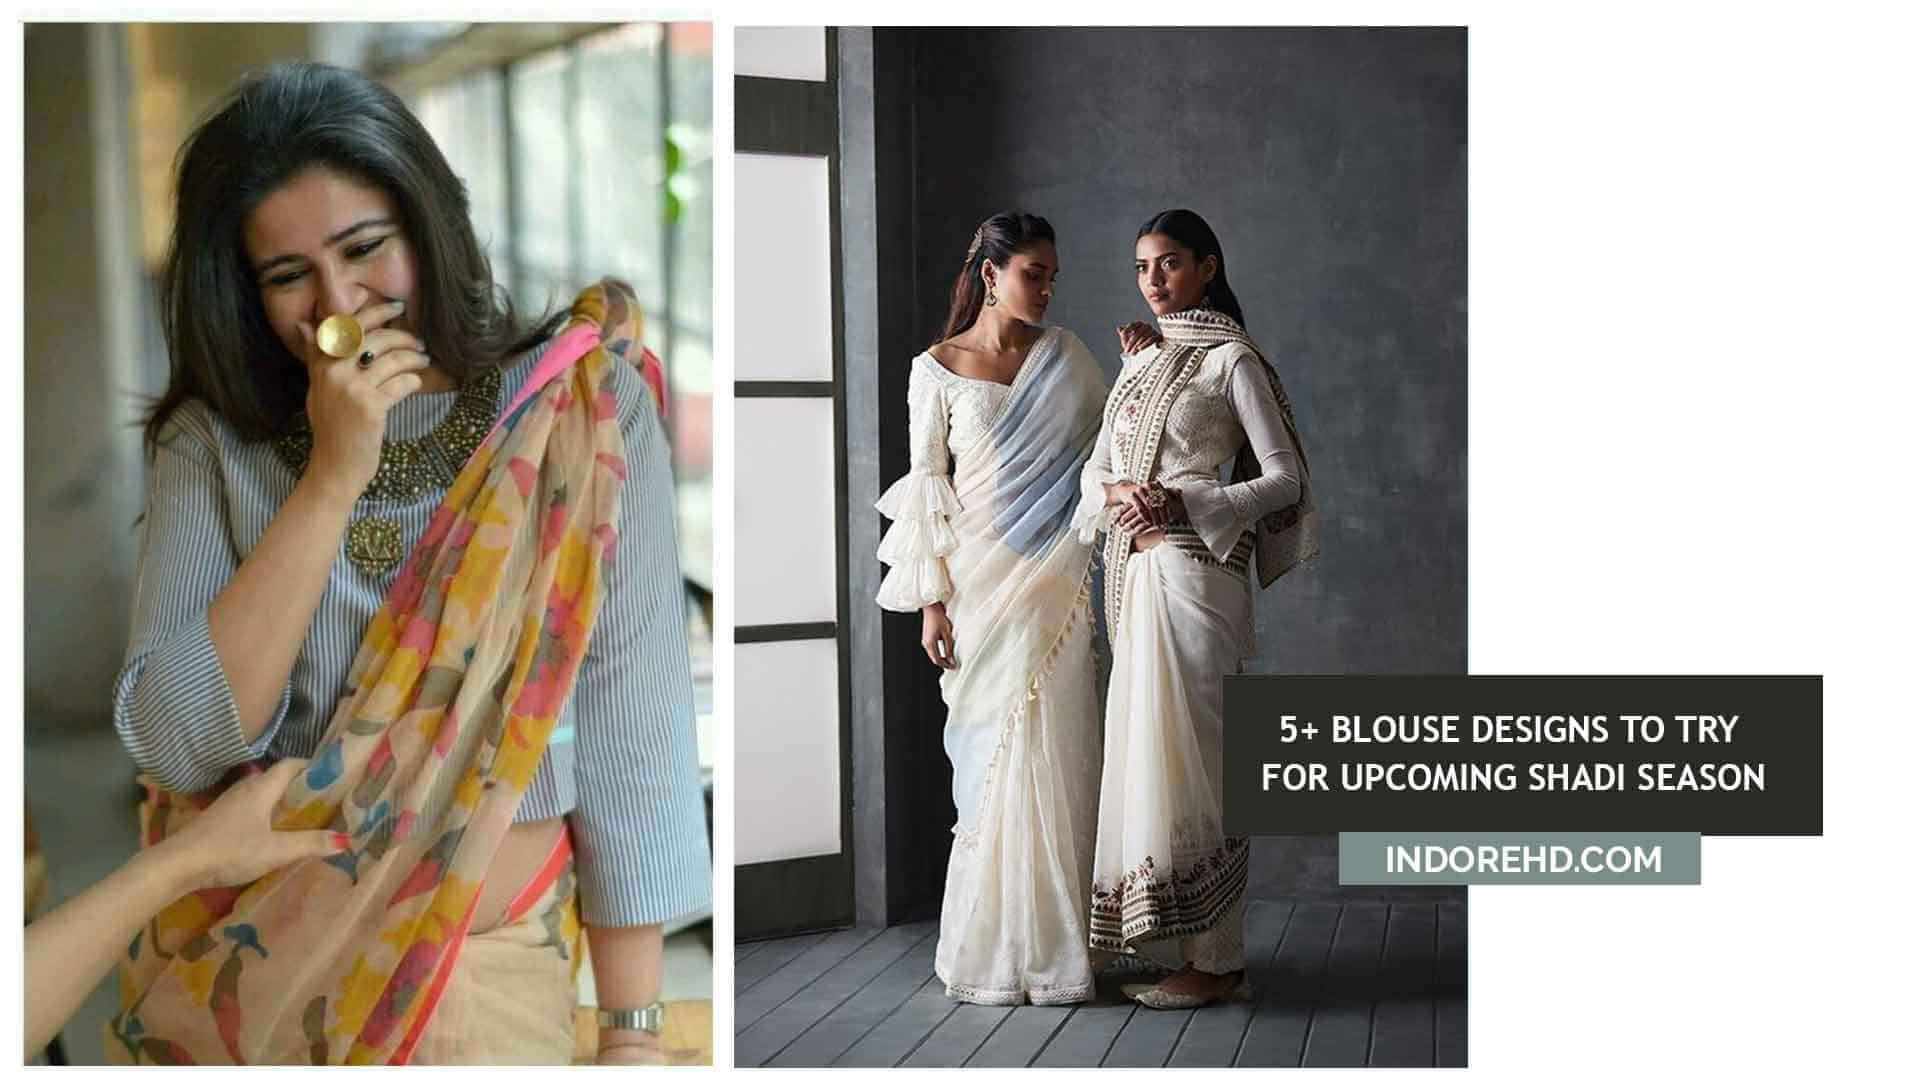 5-Plus-Blouse-Designs-shaadi-season-featured-IndoreHD